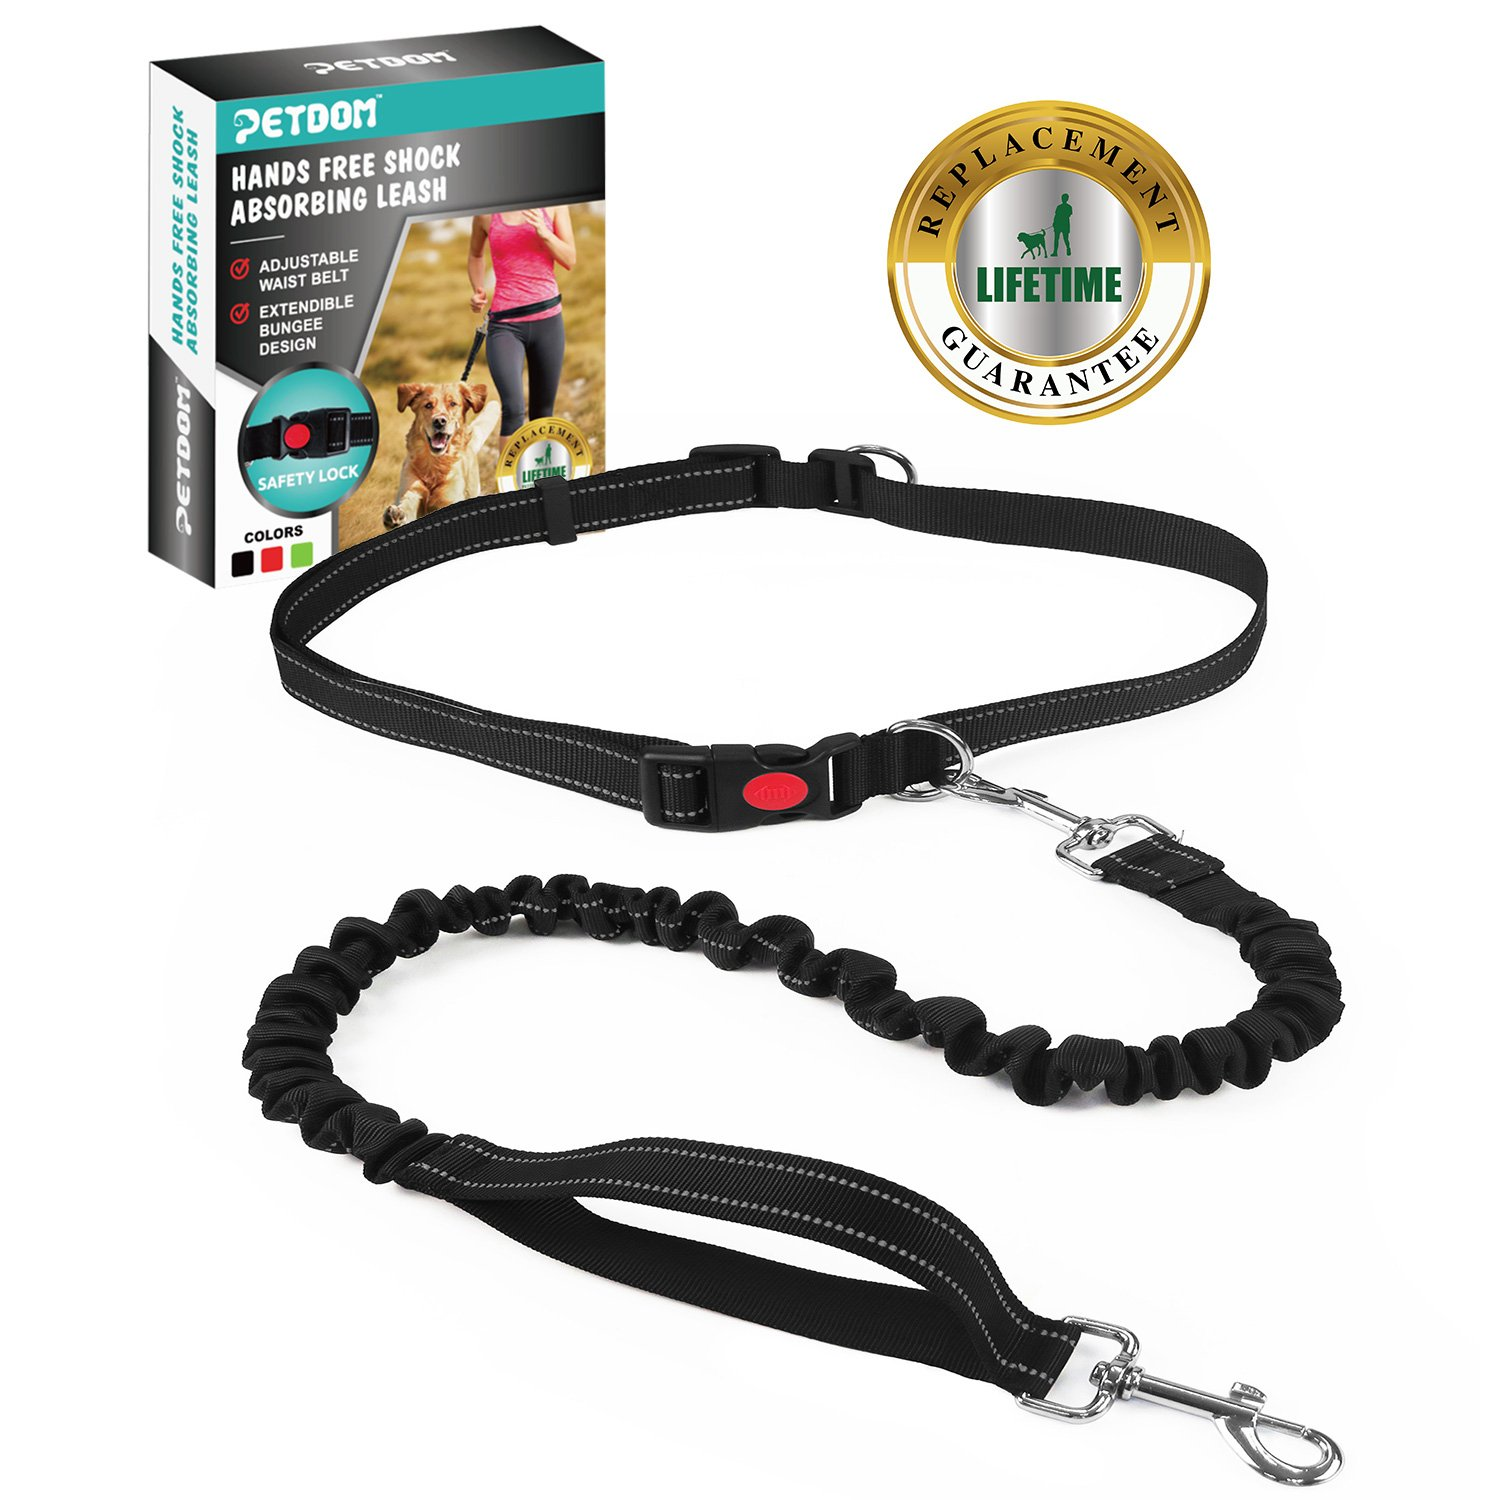 PETDOM Hands Free Dog Leash with Nylon Bungee, for Up to 90 lbs Dogs, Adjustable Waist Belt with Reflective Stitching for Running, Walking, Hiking(Black)